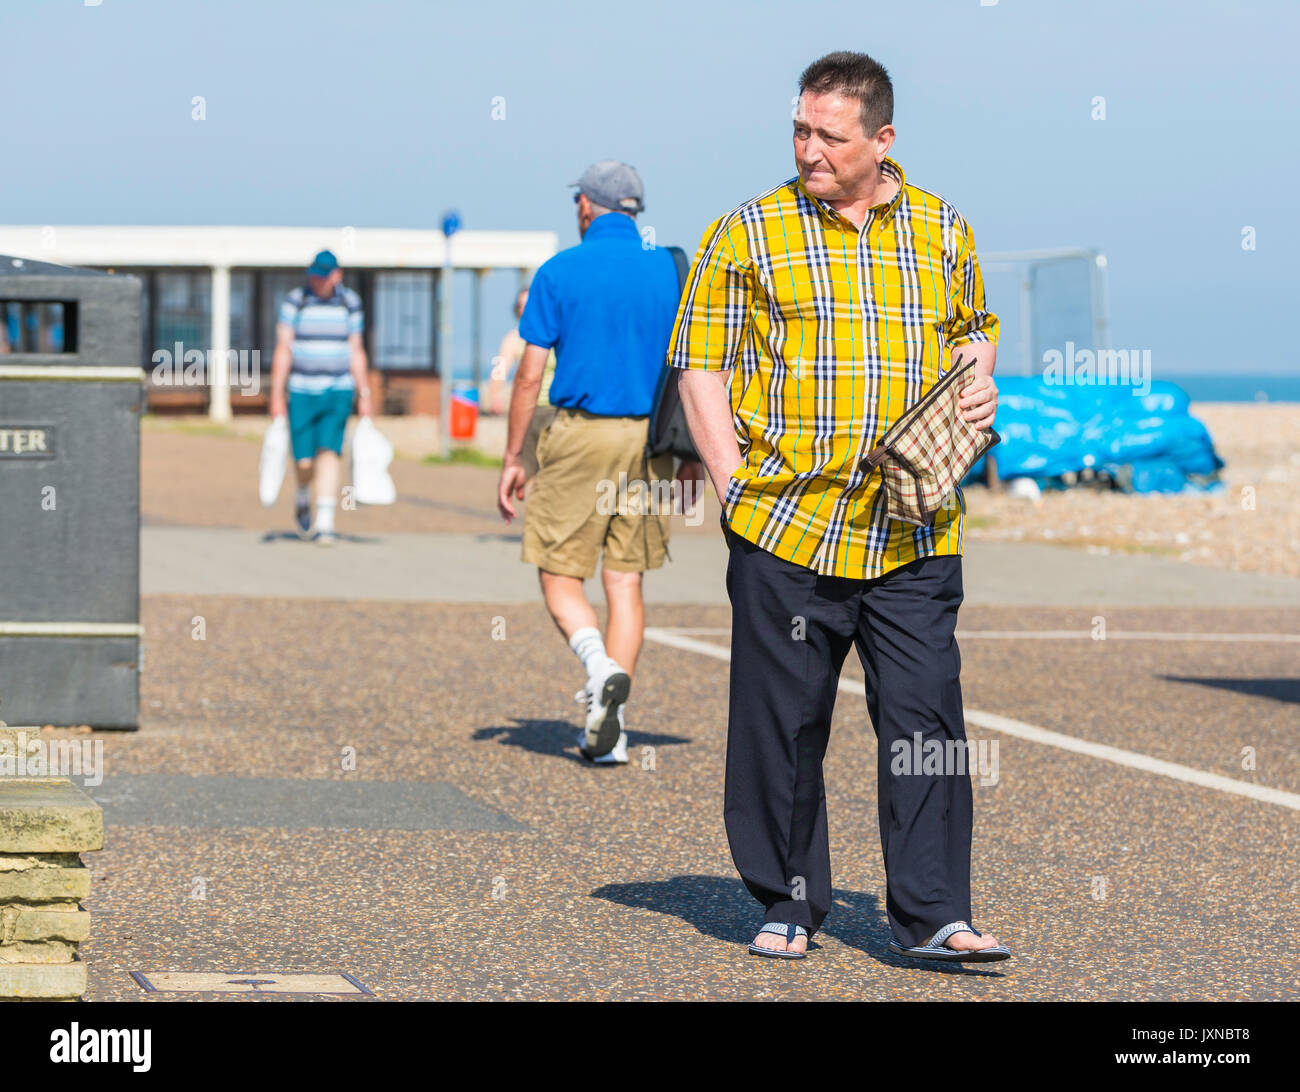 Casually dressed middle aged man walking along a path in Summer wearing sandals. Stock Photo